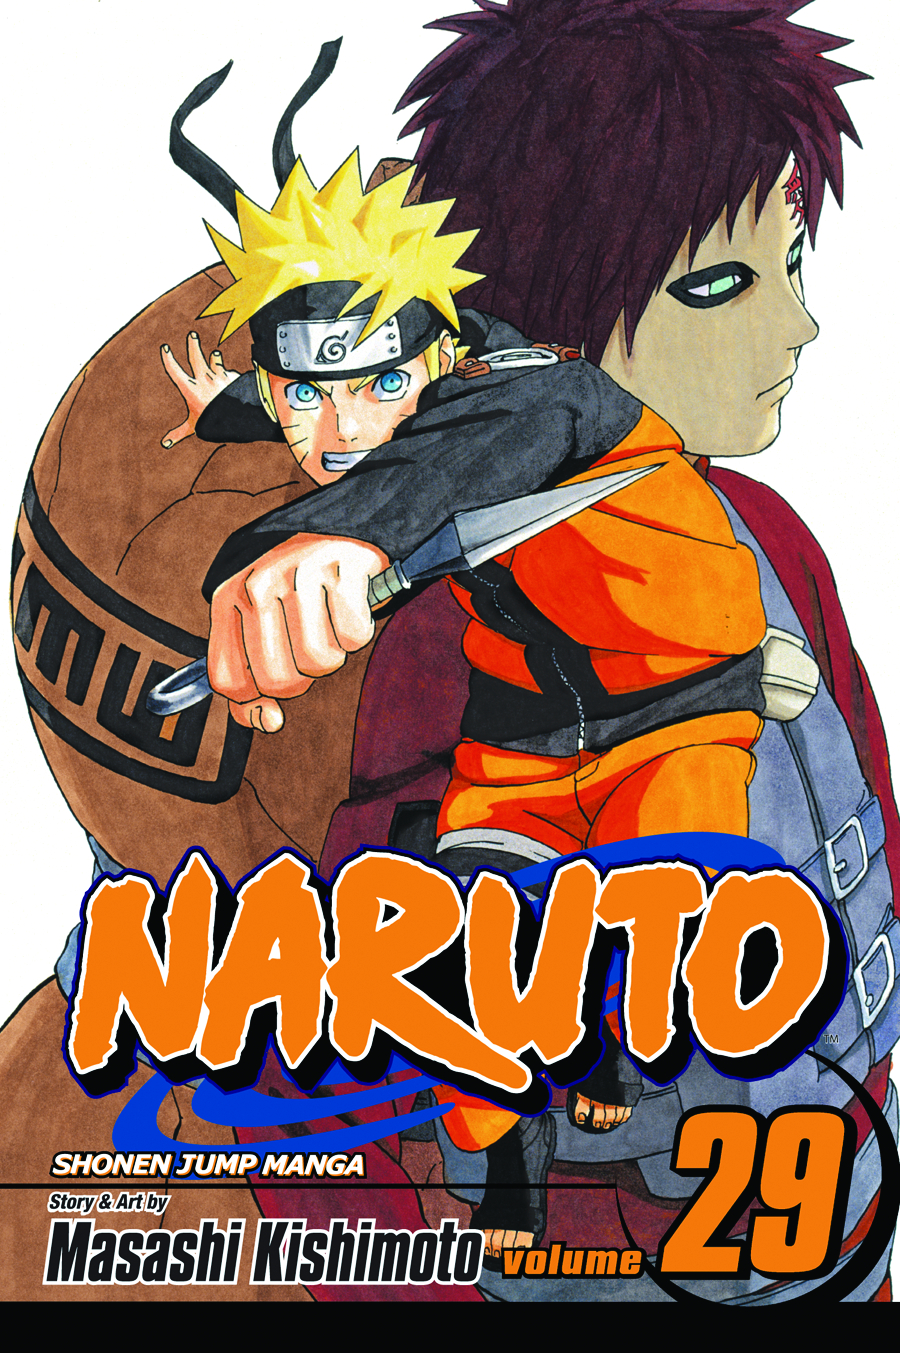 Naruto volume download